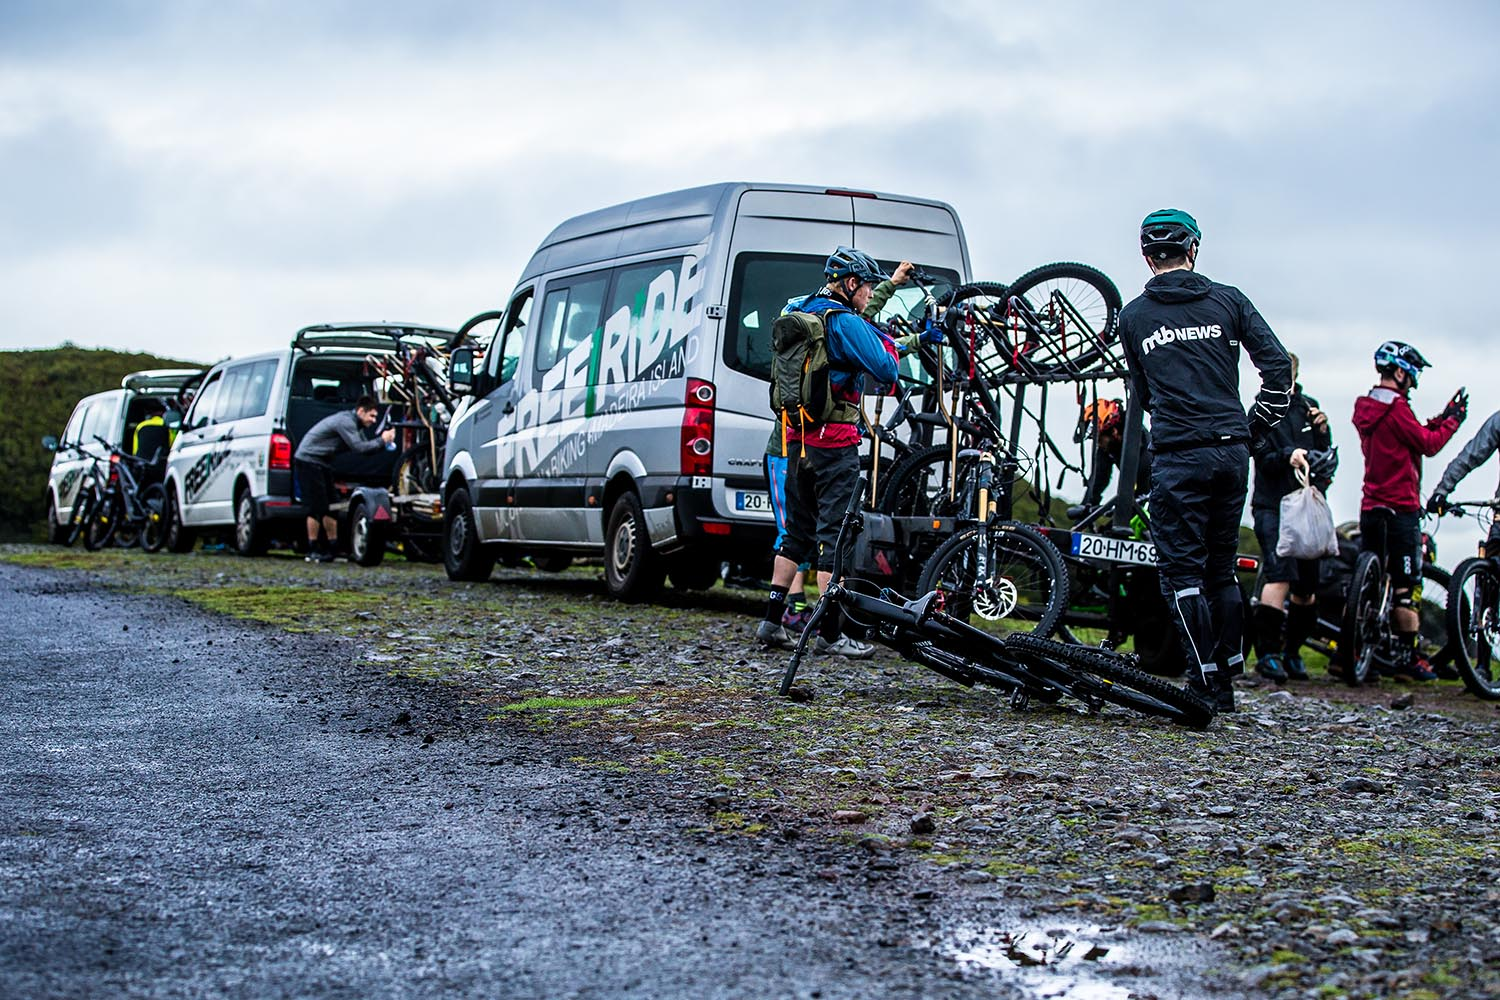 Shuttled by the boys at Freeride Madeira